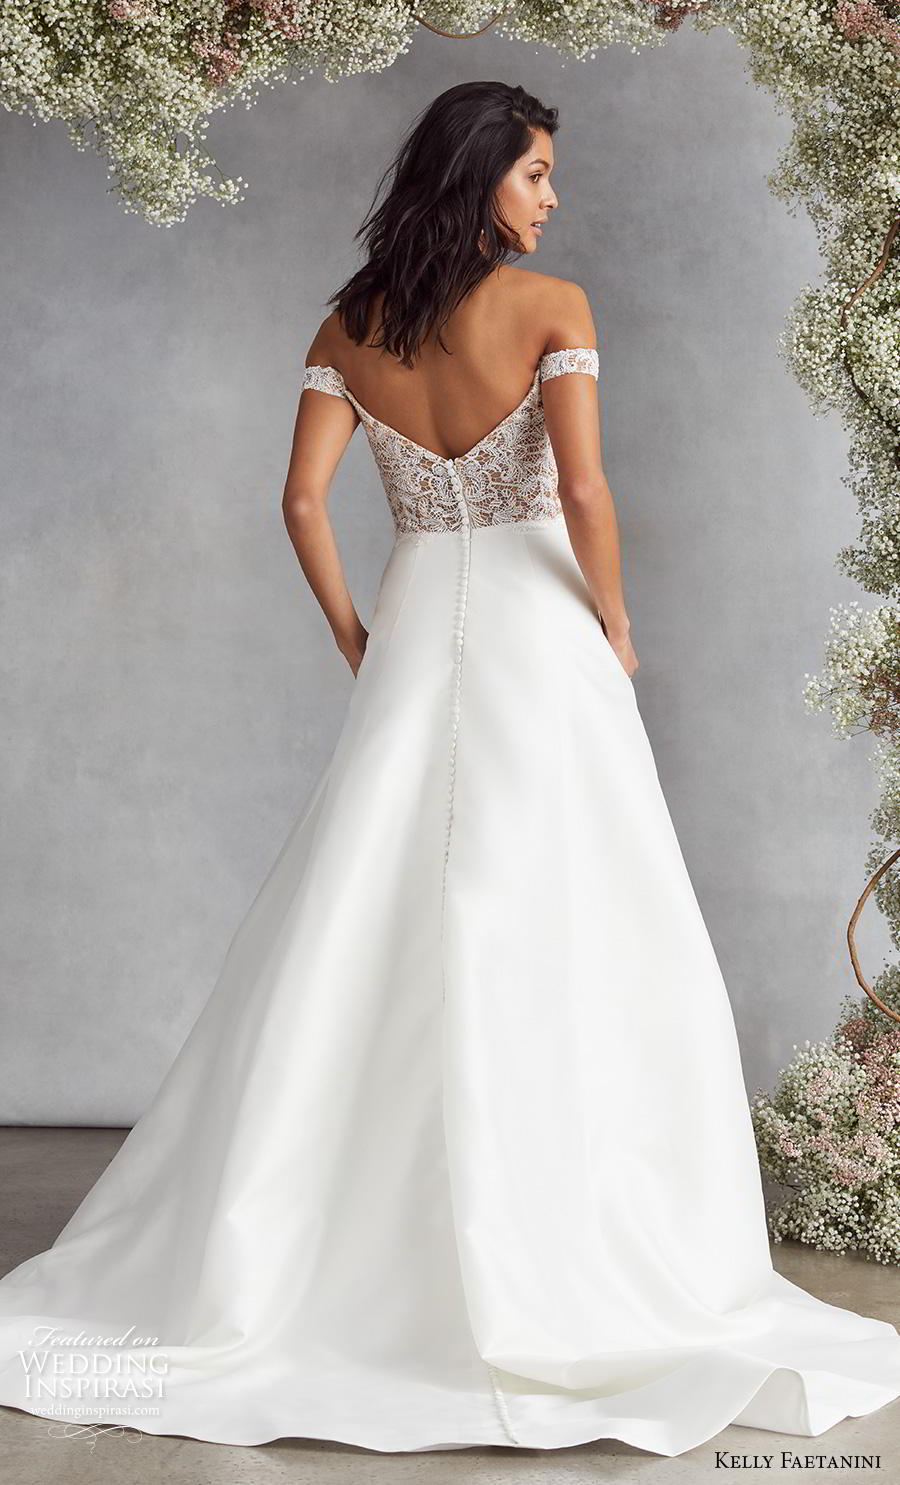 kelly faetanini fall 2020 bridal off the shoulder sweetheart neckline heavily embellished bodice plain skirt elegant classic a  line wedding dress v back medium train (3) bv